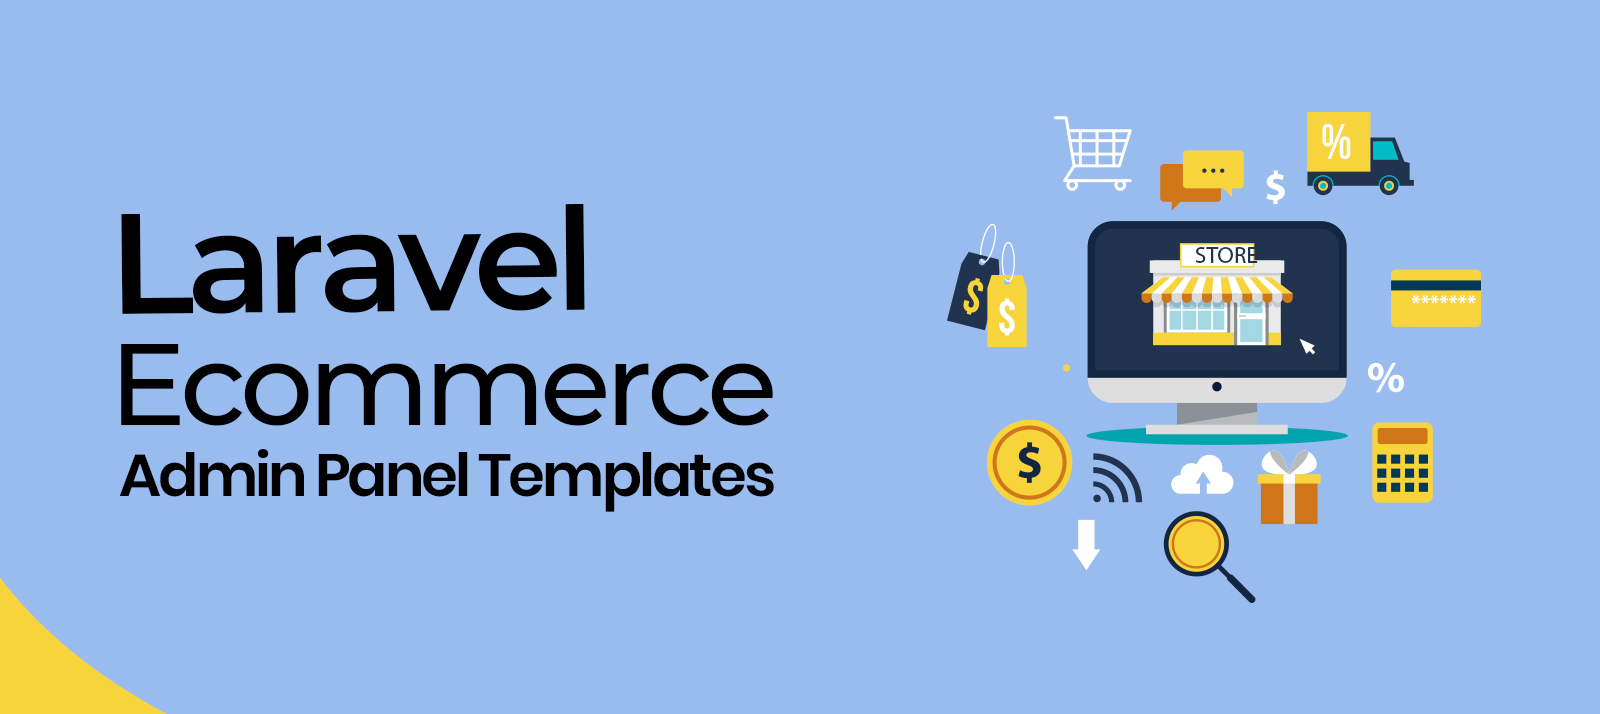 Laravel Ecommerce Admin Panel Templates You Do Not Want To Miss Out In 2020